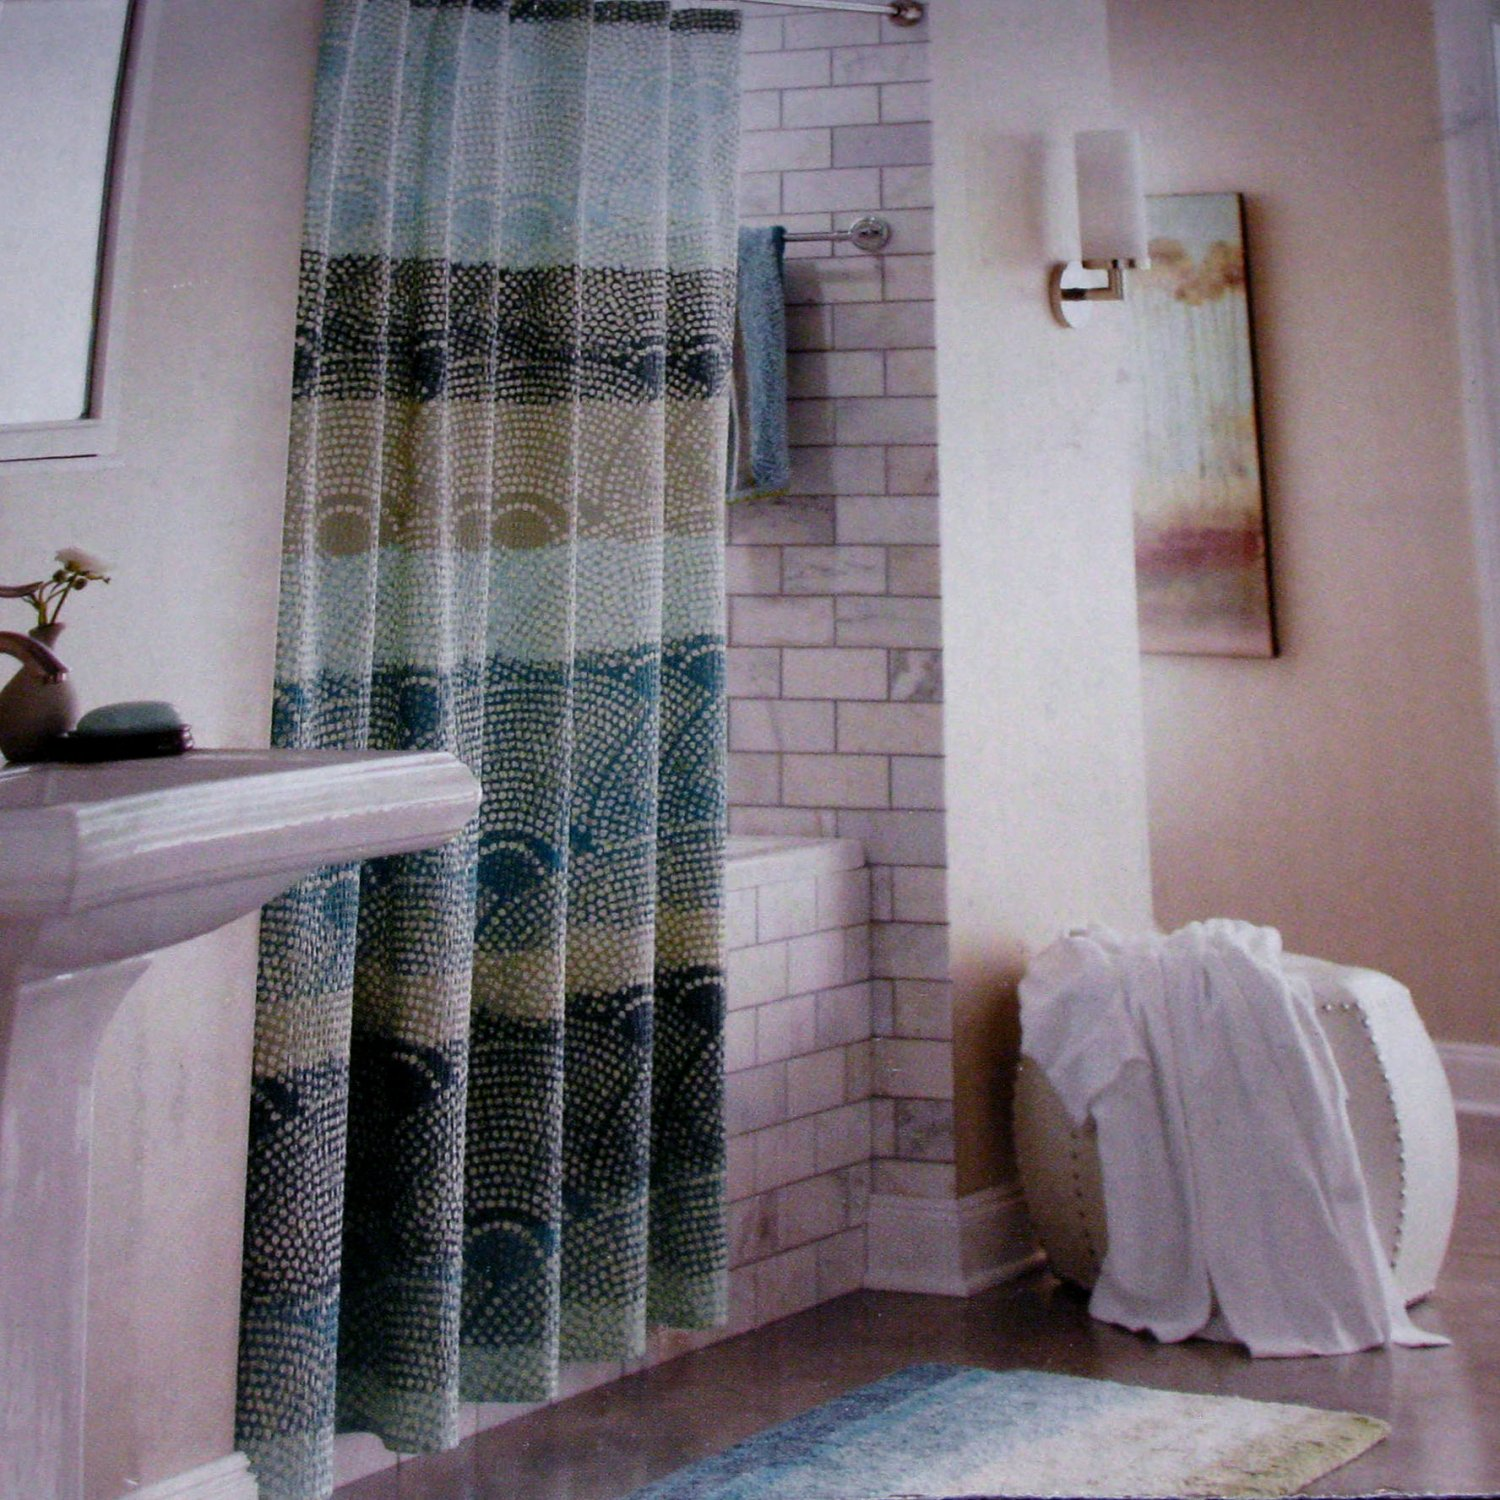 ... DOT Cool Seersucker Teal Aqua Gray Fabric Shower Curtain Target